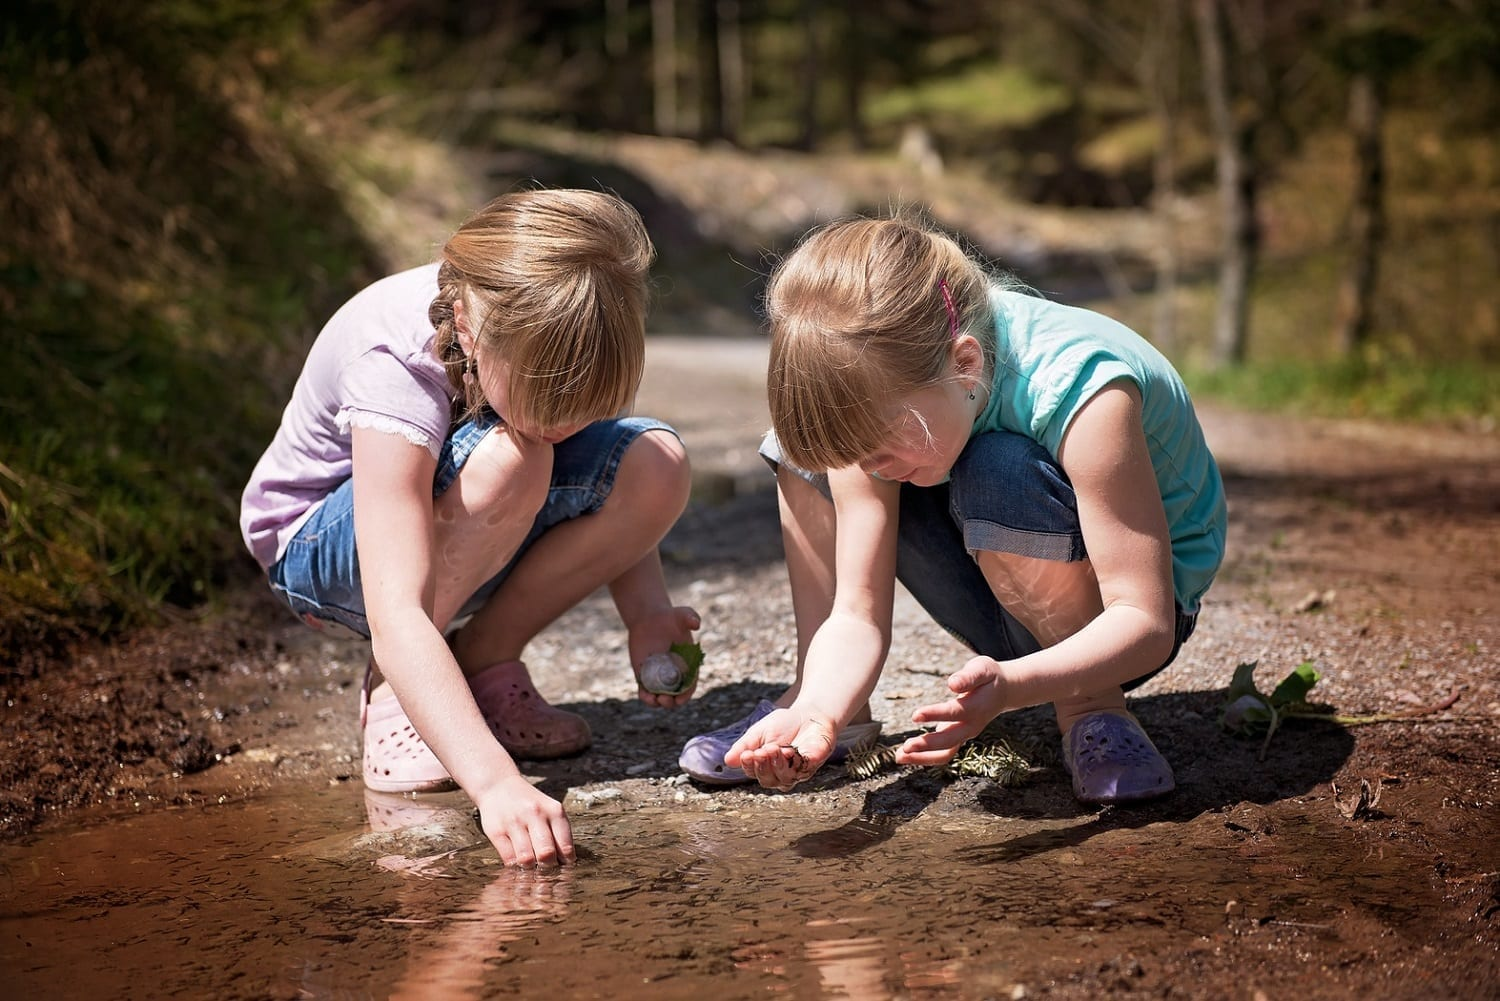 Girls playing in a mud bottomed puddle, photo credit: Pxhere